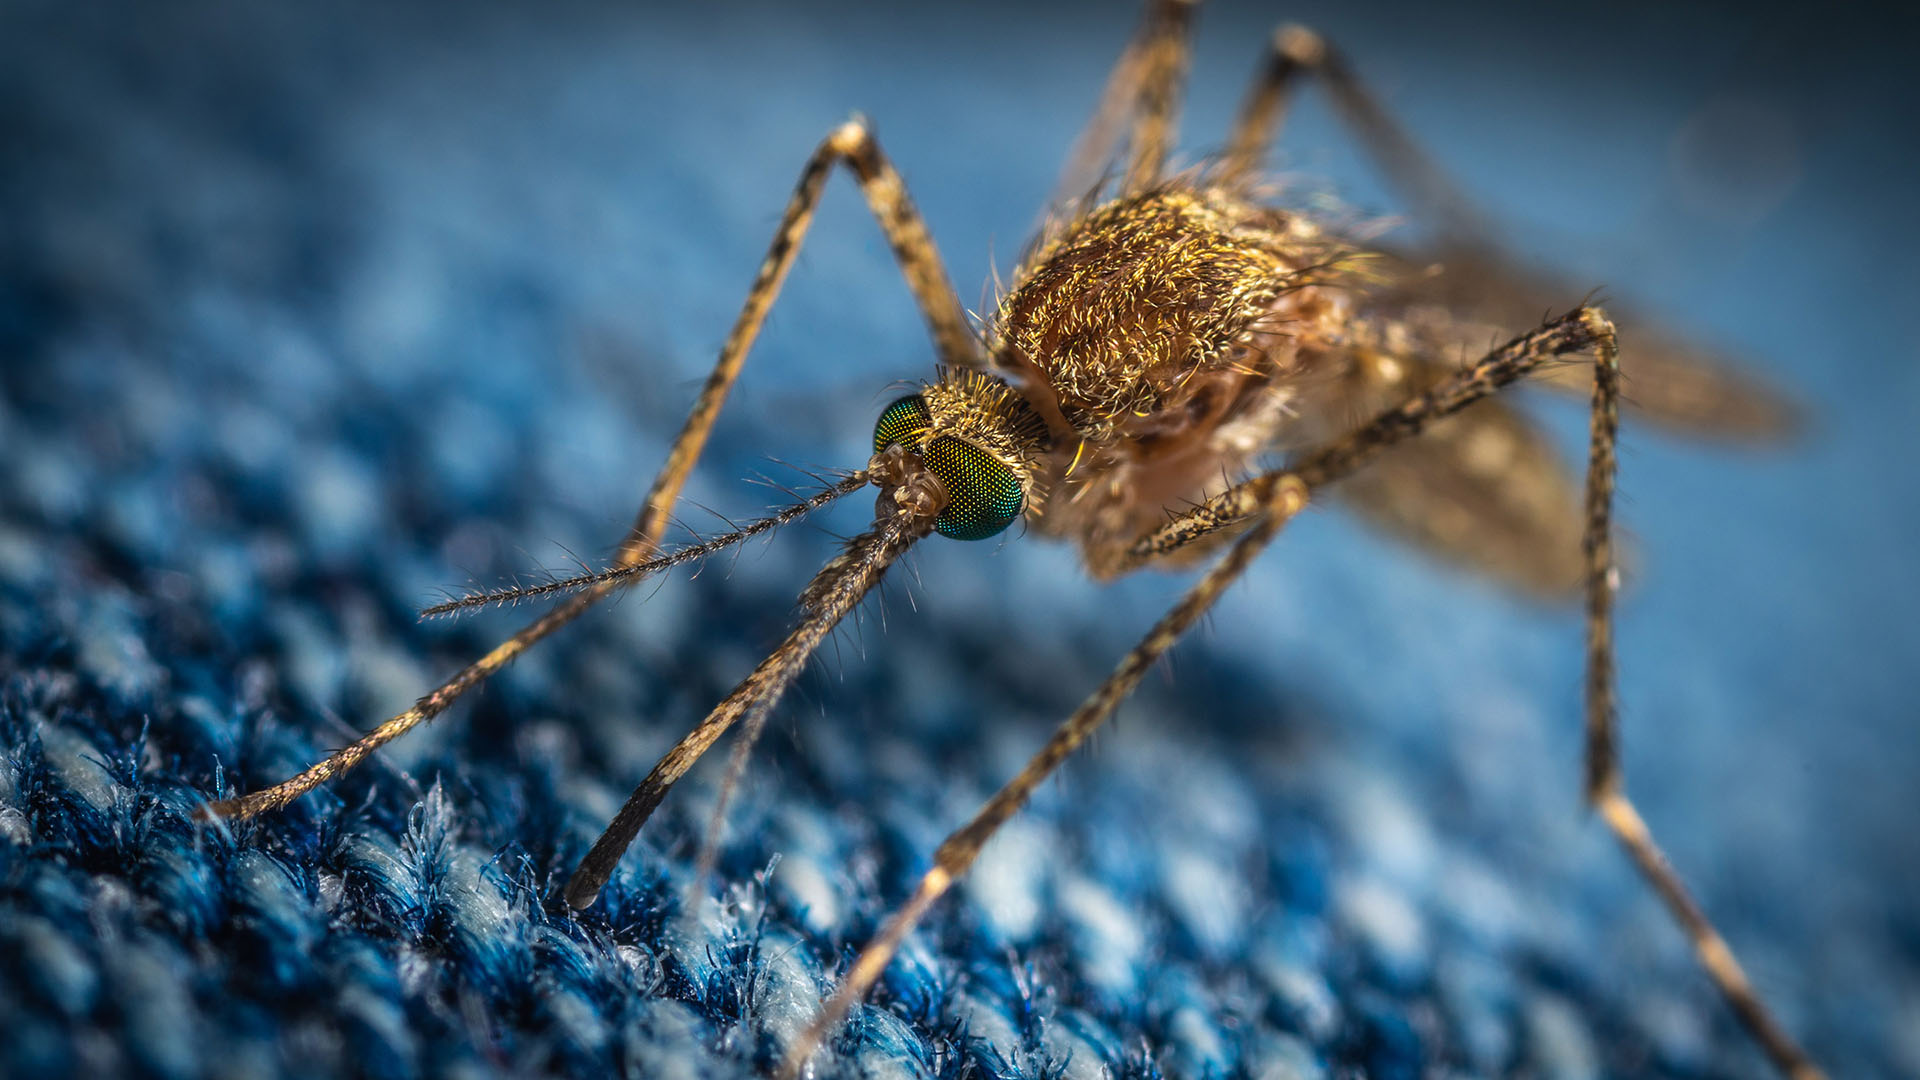 Close up of a brown mosquito on blue fabric